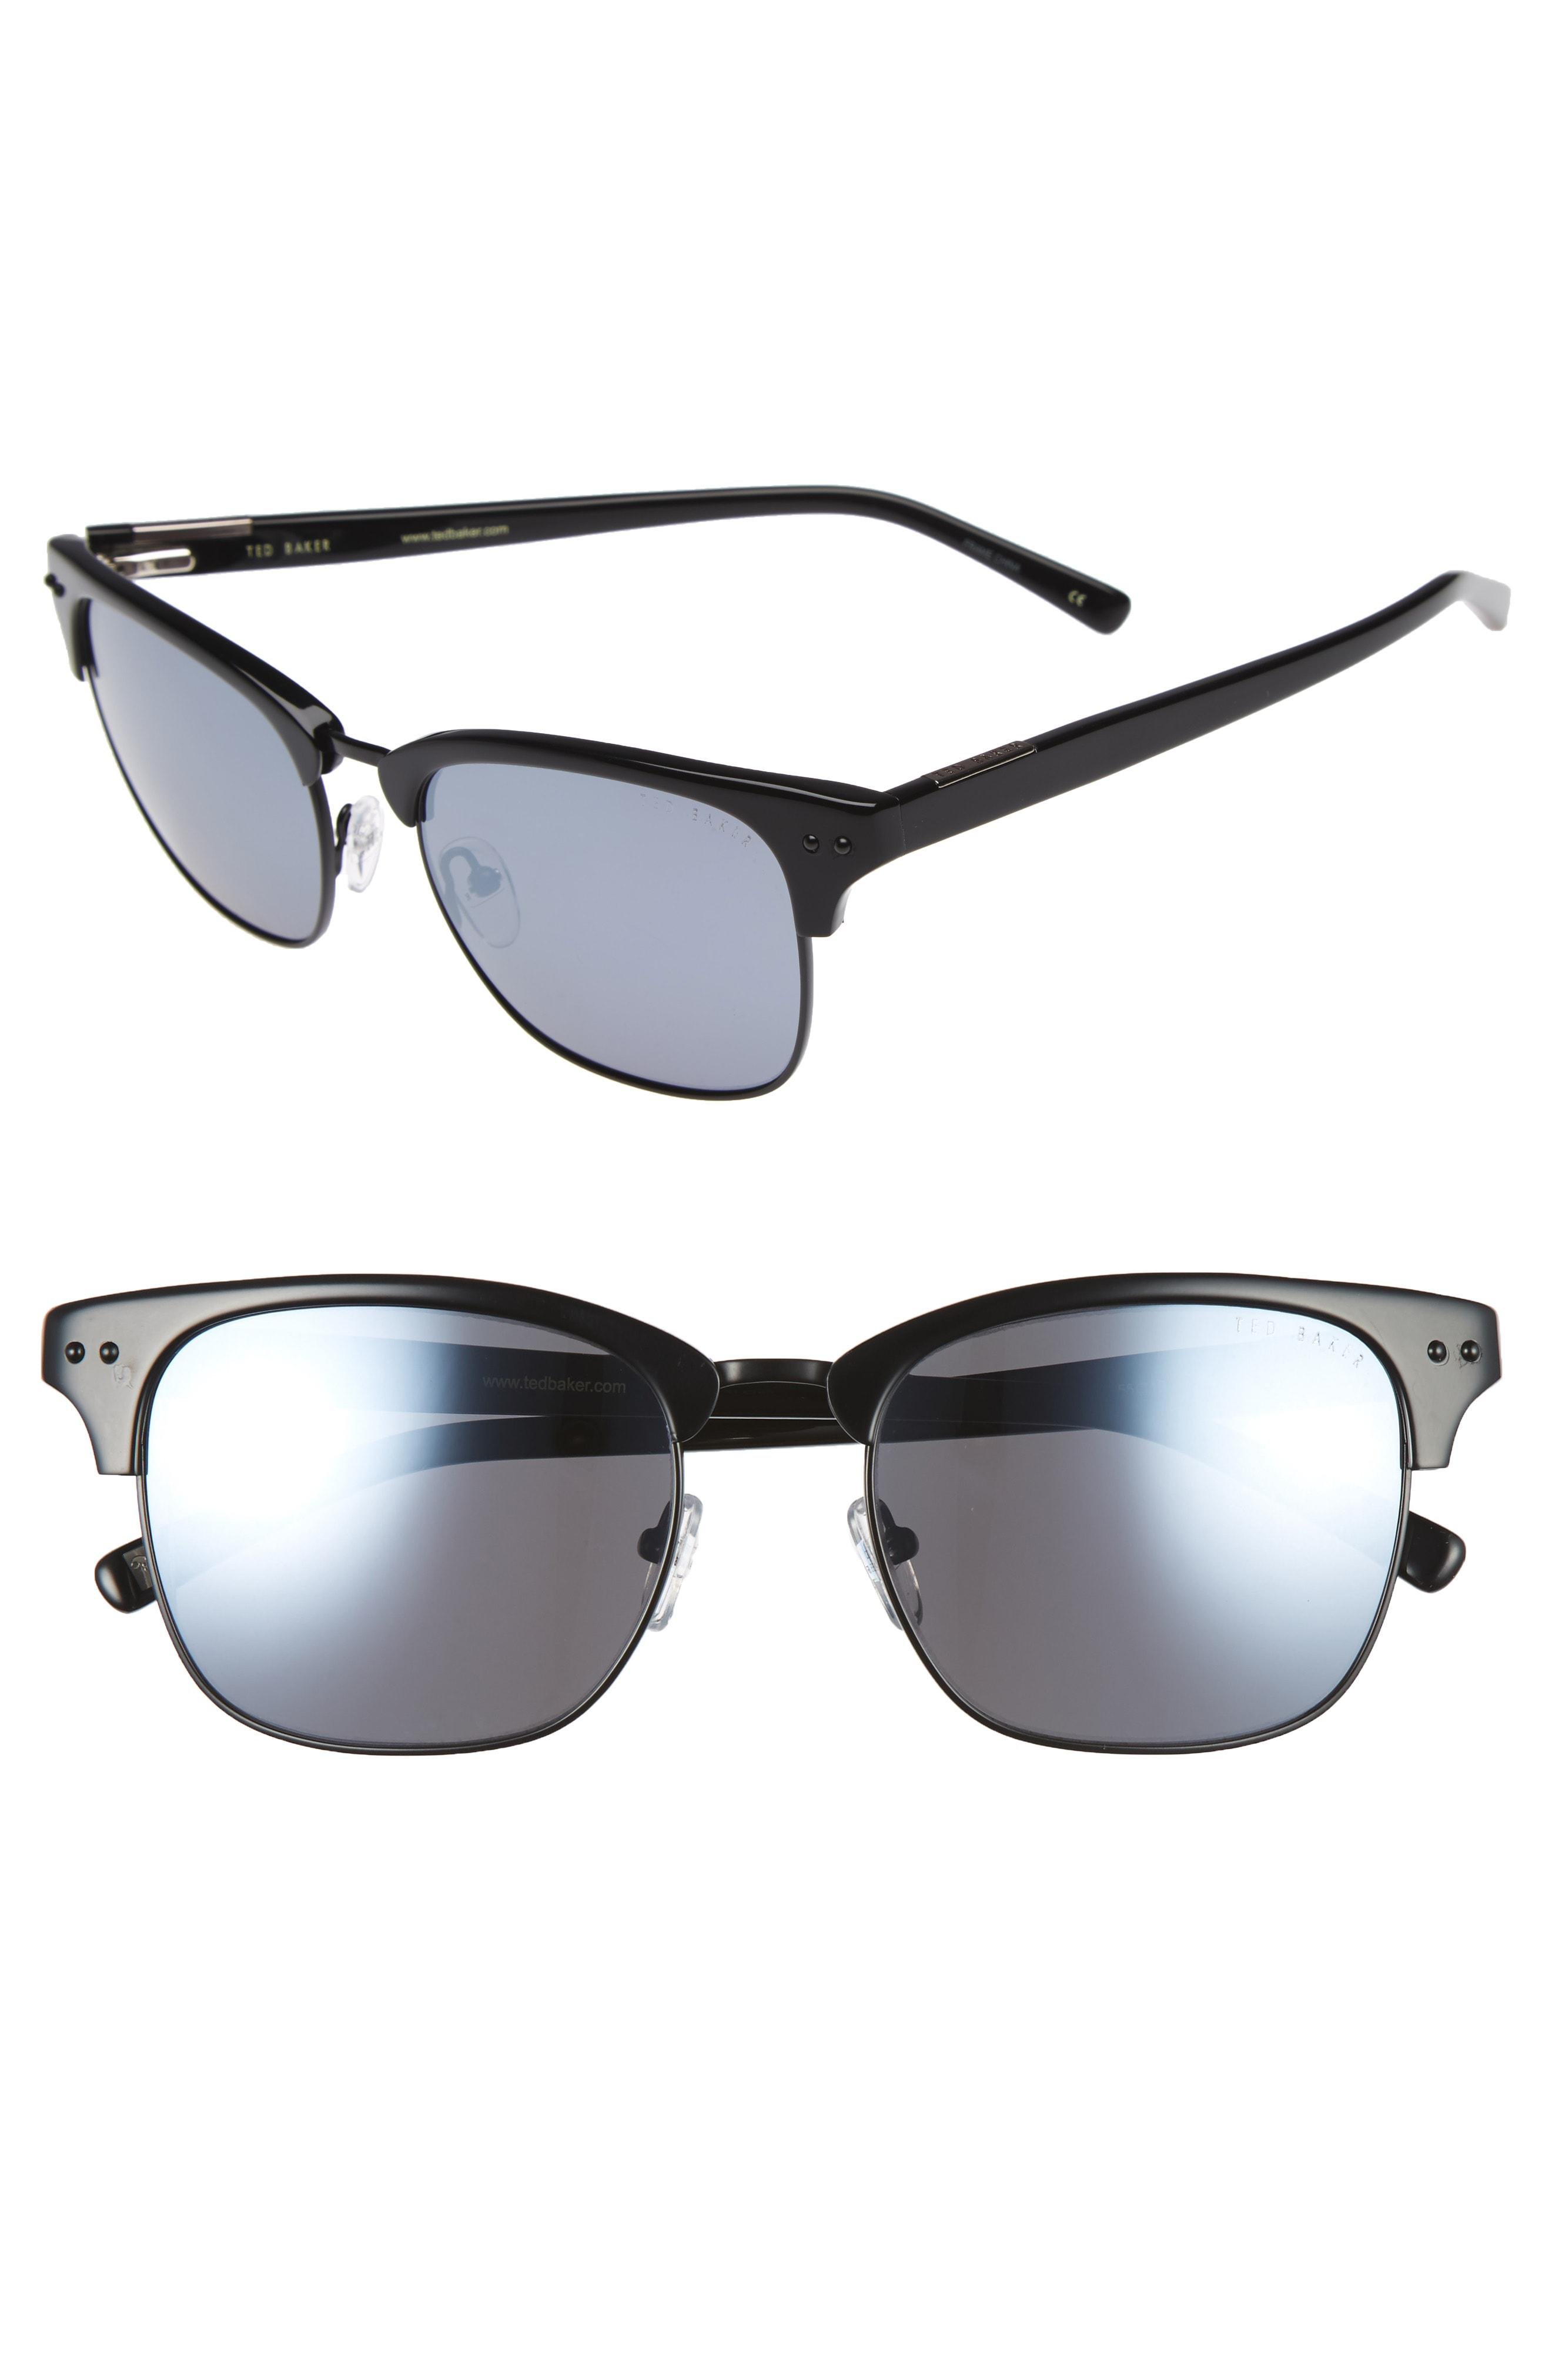 494a4208e0 Lyst - Ted Baker 55mm Polarized Browline Sunglasses - for Men